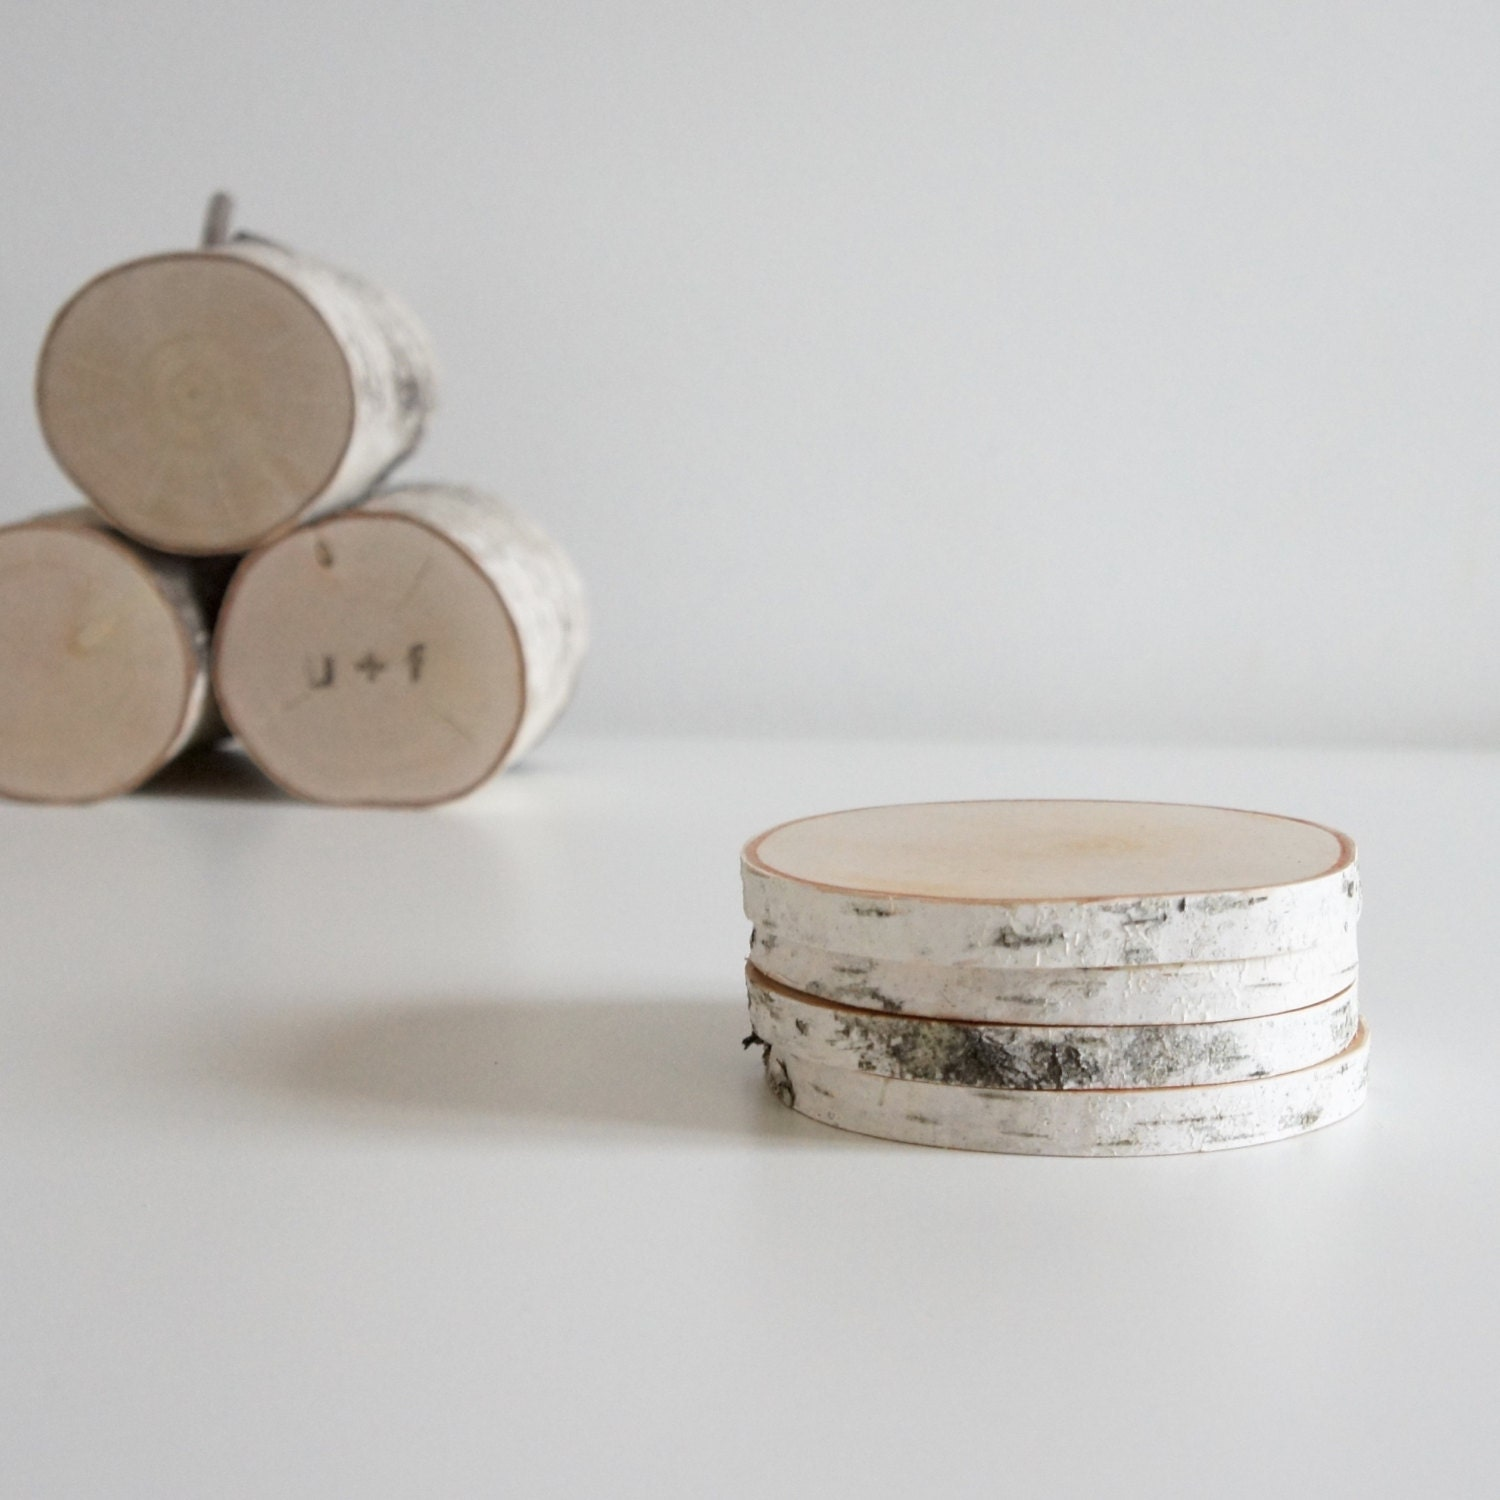 white birch wood coasters - set of 4, birch coasters, wooden coasters, rustic coasters, log coasters, wood slice coasters